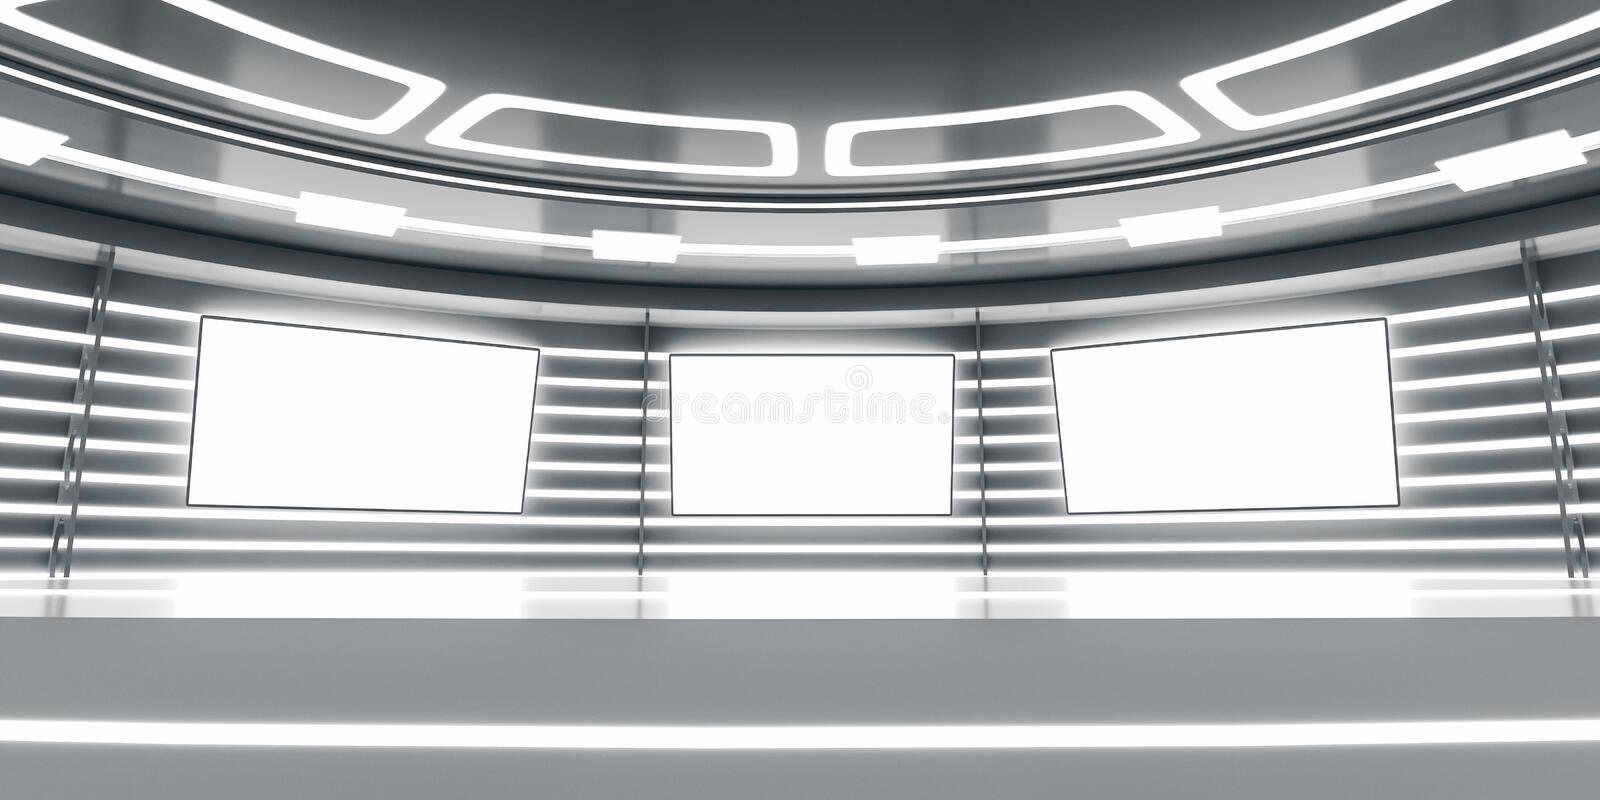 Abstract futuristic interior with glowing panels vector illustration